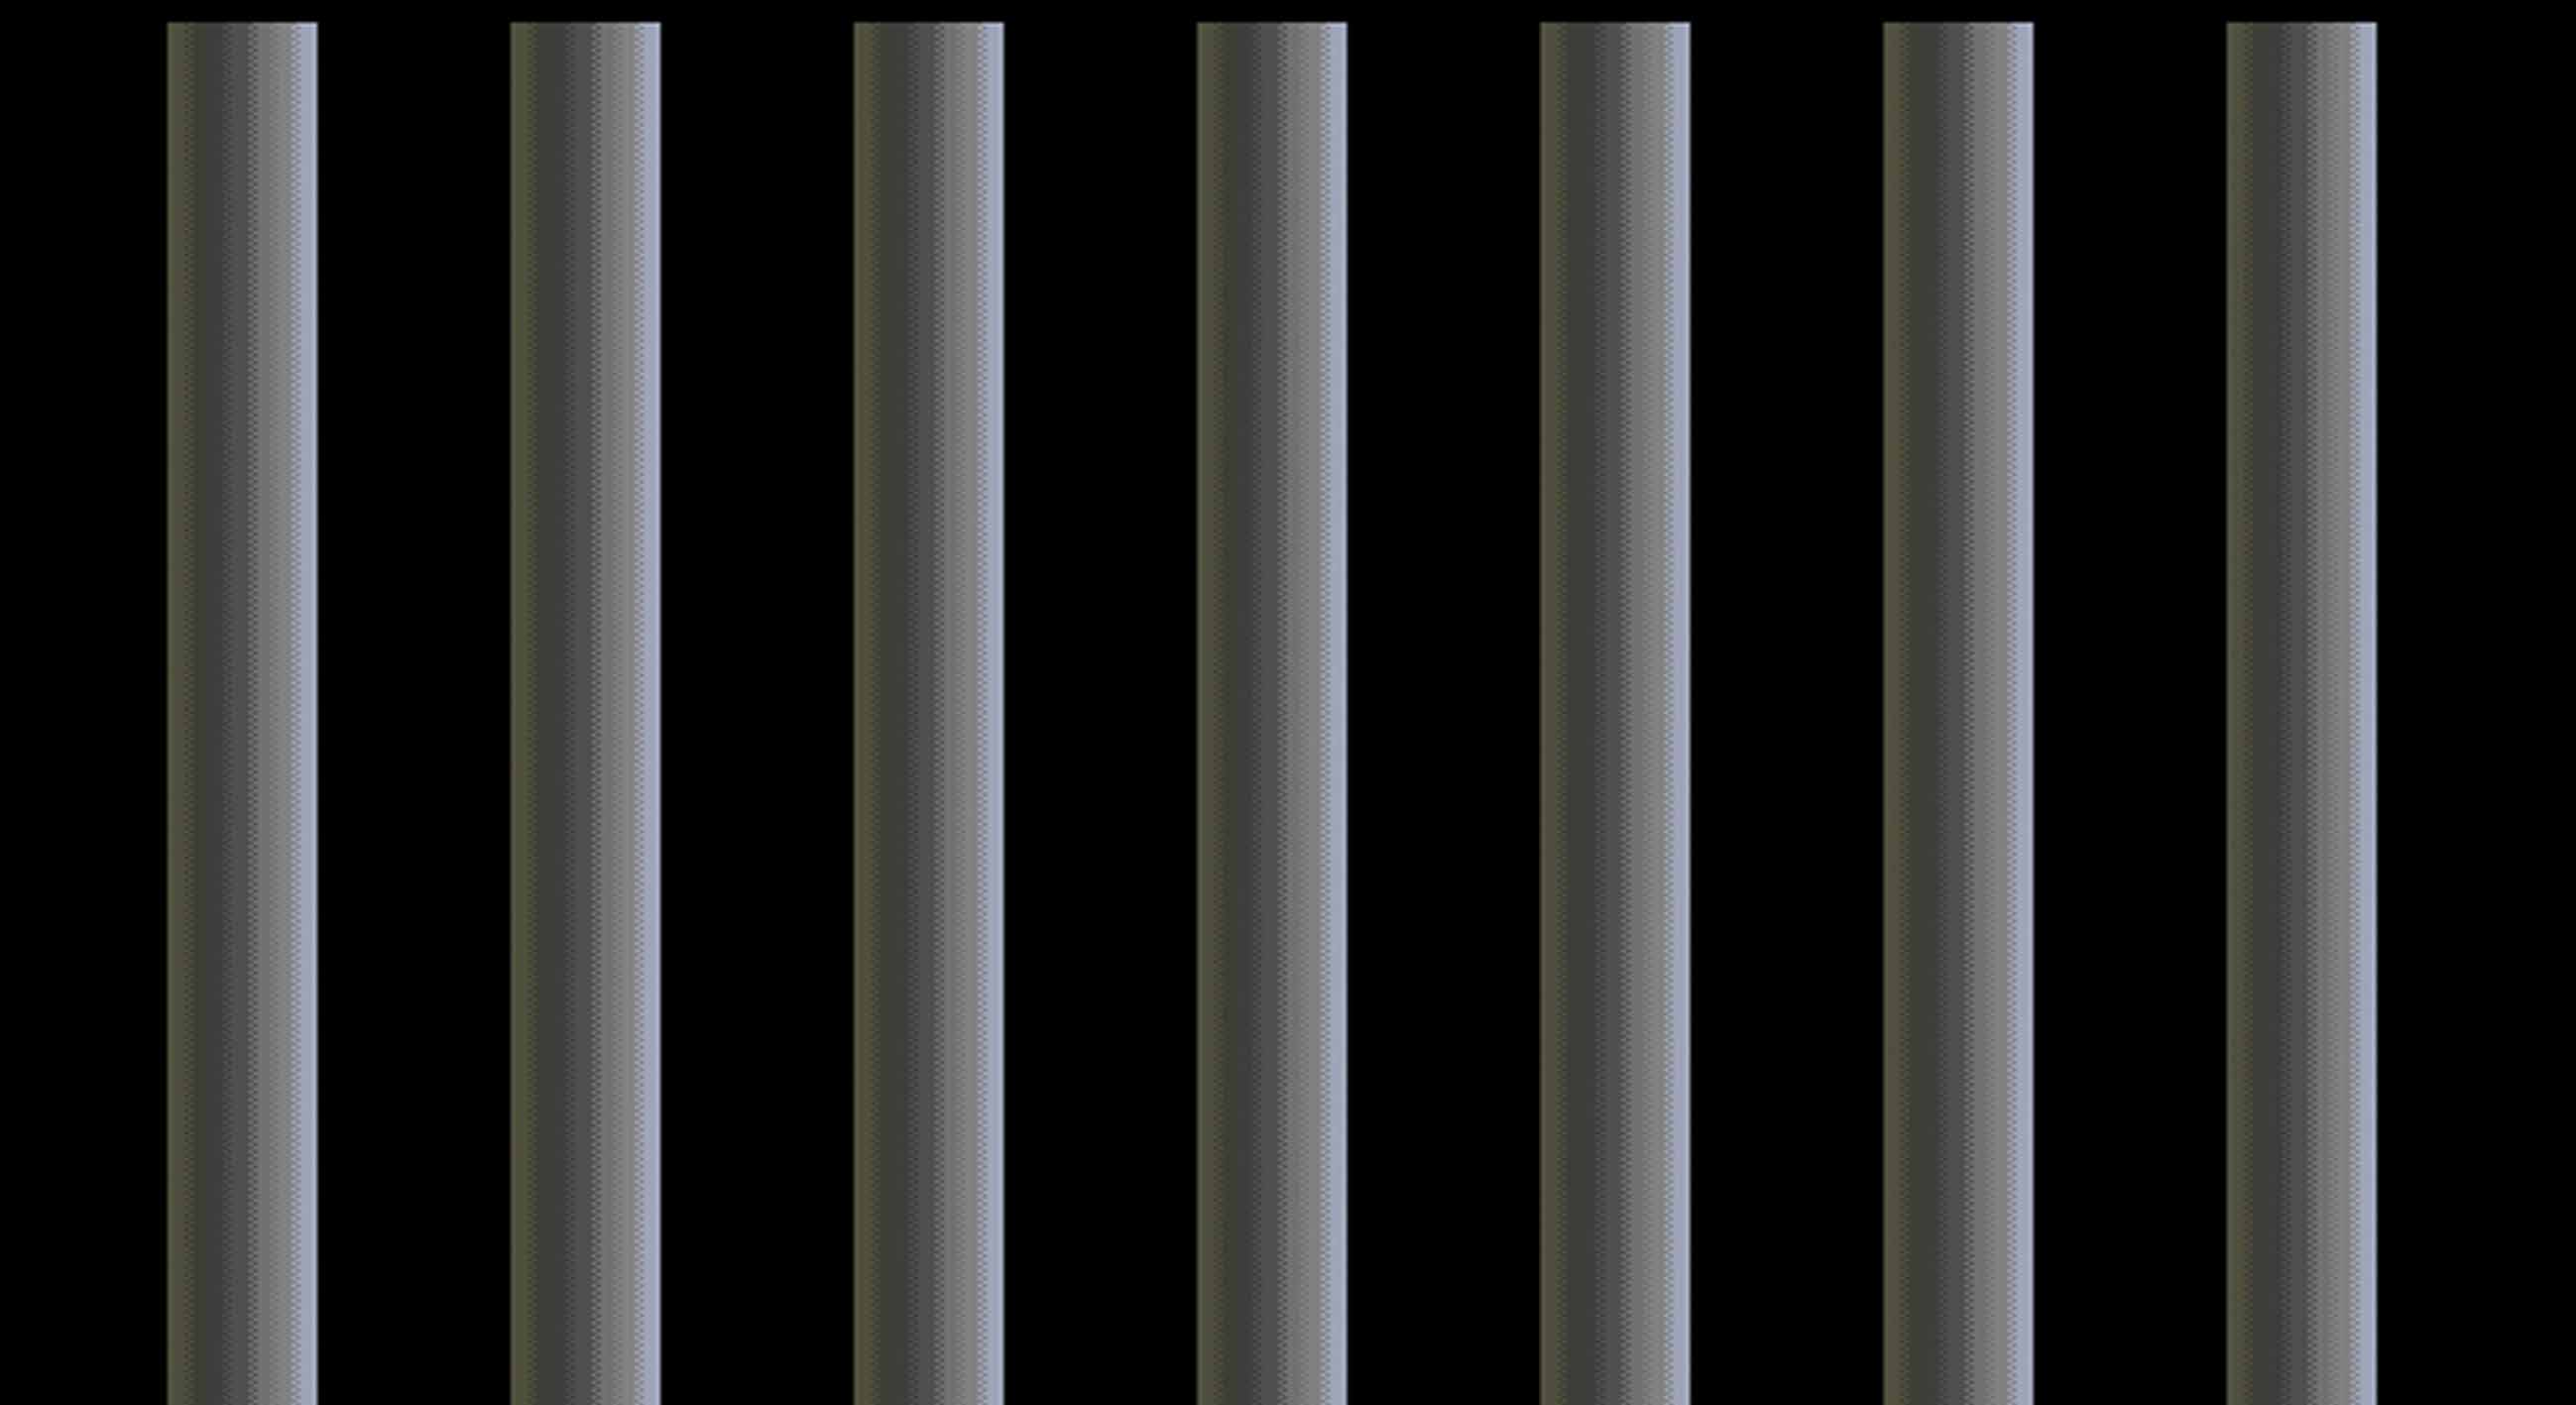 disenfranchisement just or unjust Background and thesis should american citizens who were once incarcerated lose their right to vote currently across the nation american citizens who were once convicted of a felony has lost their right to vote, even after being released from prison, parole, probation, and paying all of their fines to the county or.